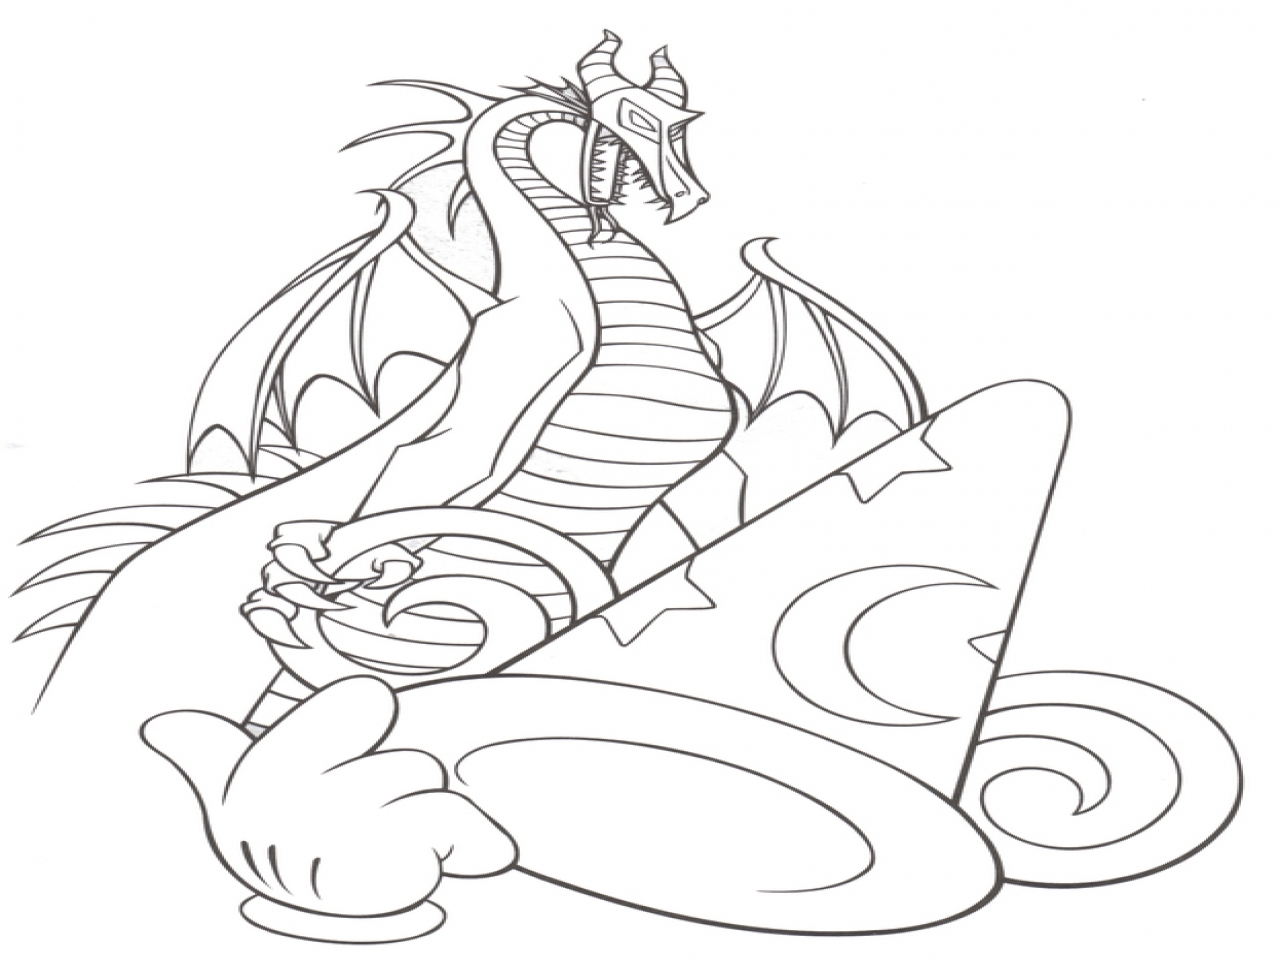 1280x960 New Walt Disney World Coloring Pages Collection Printable